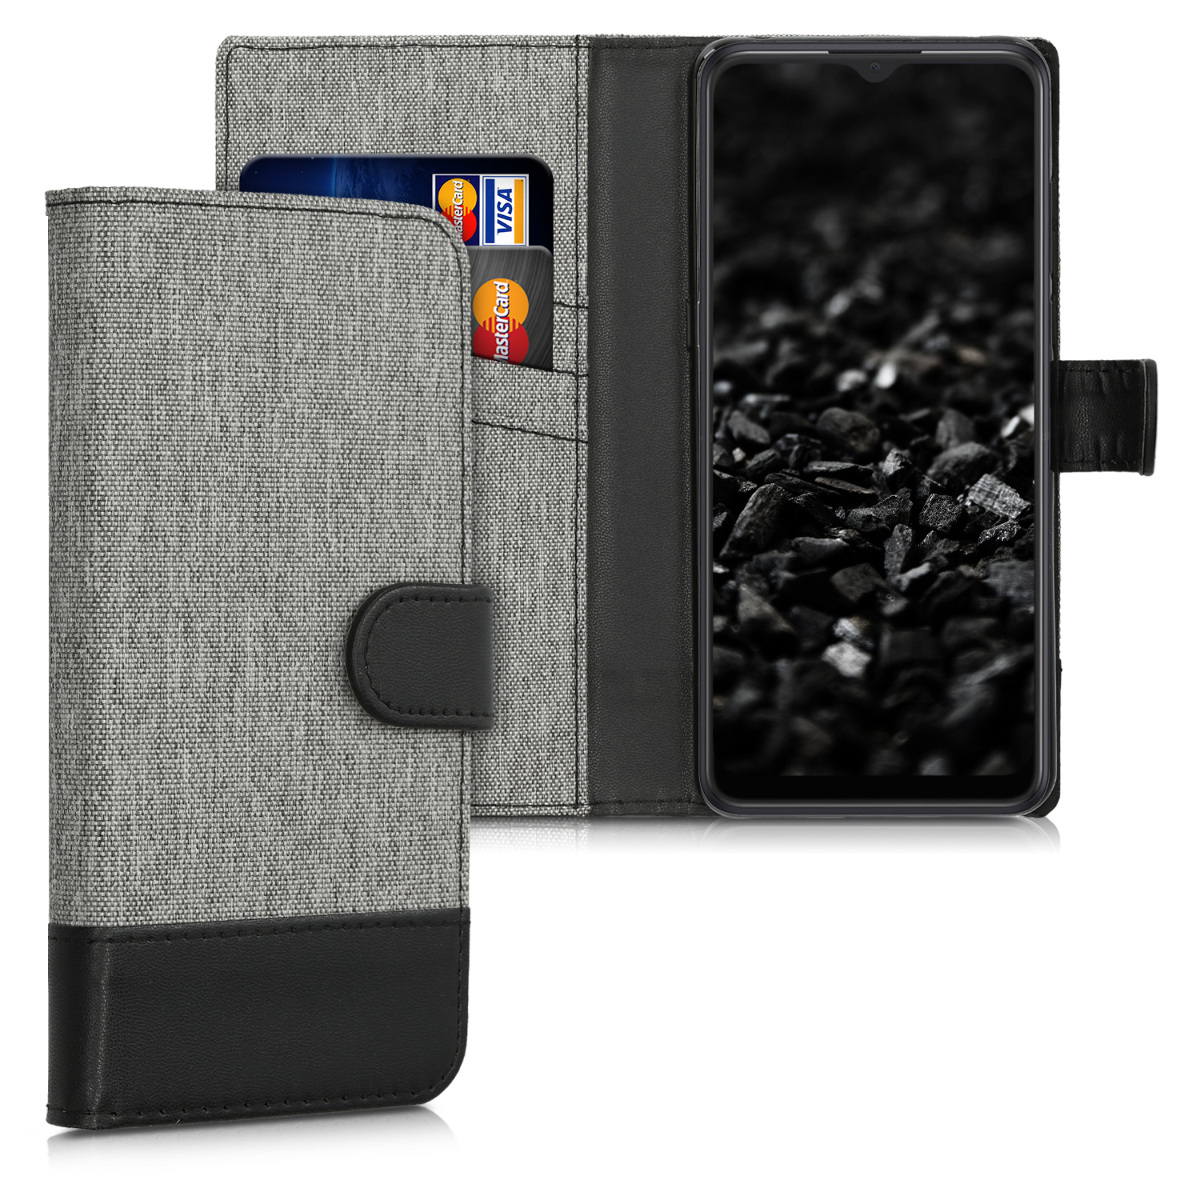 KW Θήκη - Πορτοφόλι Alcatel 3X (2019) - Fabric and PU Leather Flip Cover - Grey / Black (50473.22)